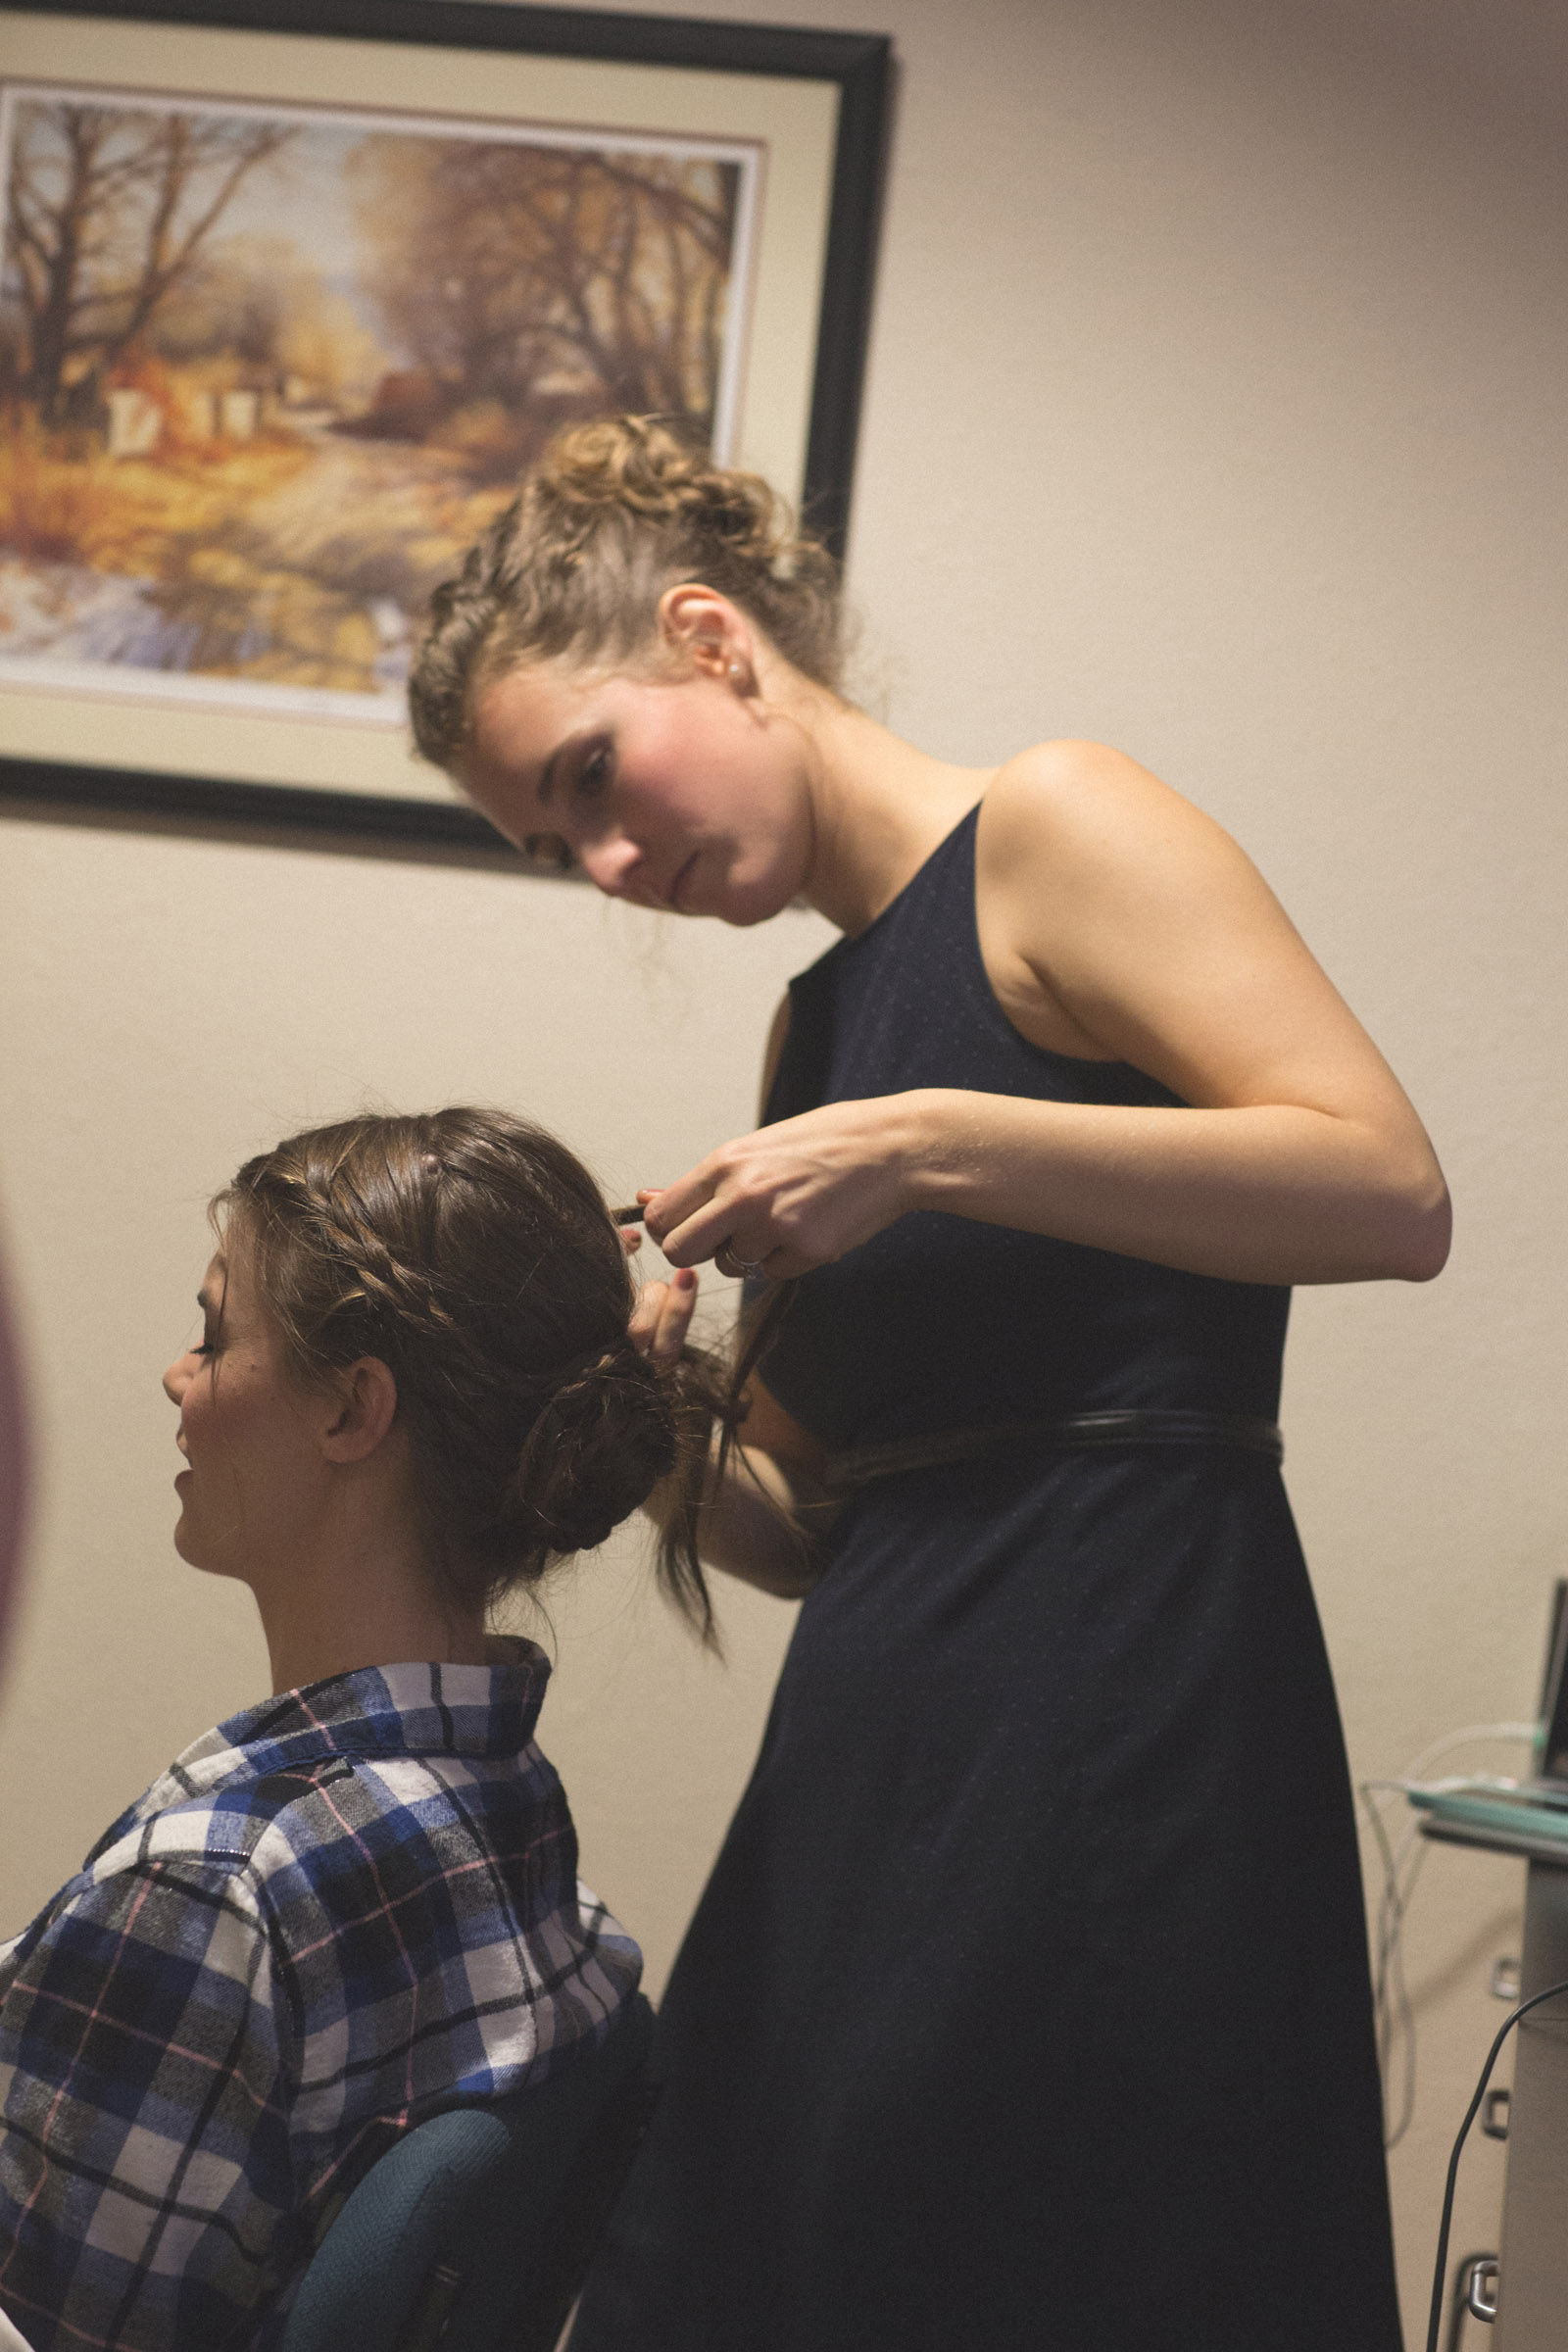 003-wedding-hair-preparation-in-new-mexico